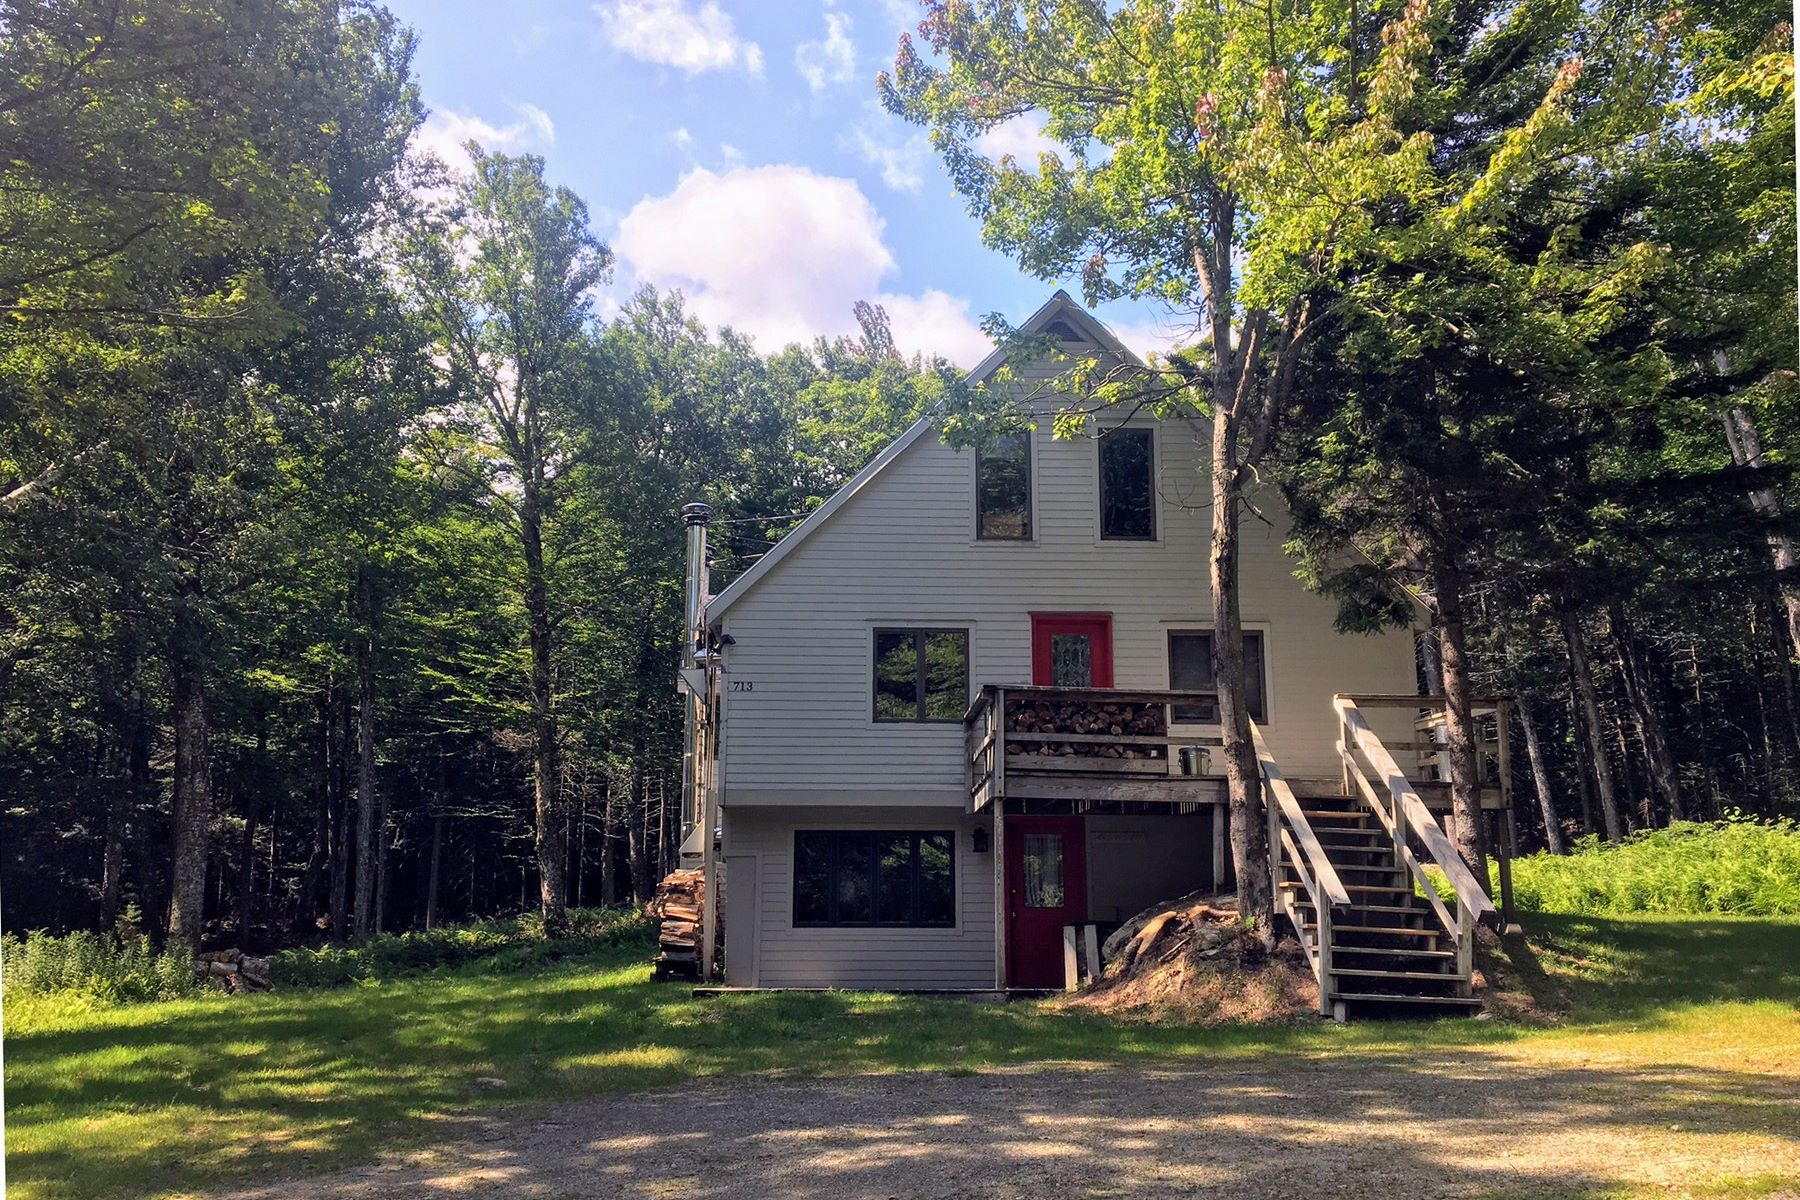 Single Family Home for Sale at 713 Stratton Arlington, Stratton Stratton, Vermont, 05360 United States